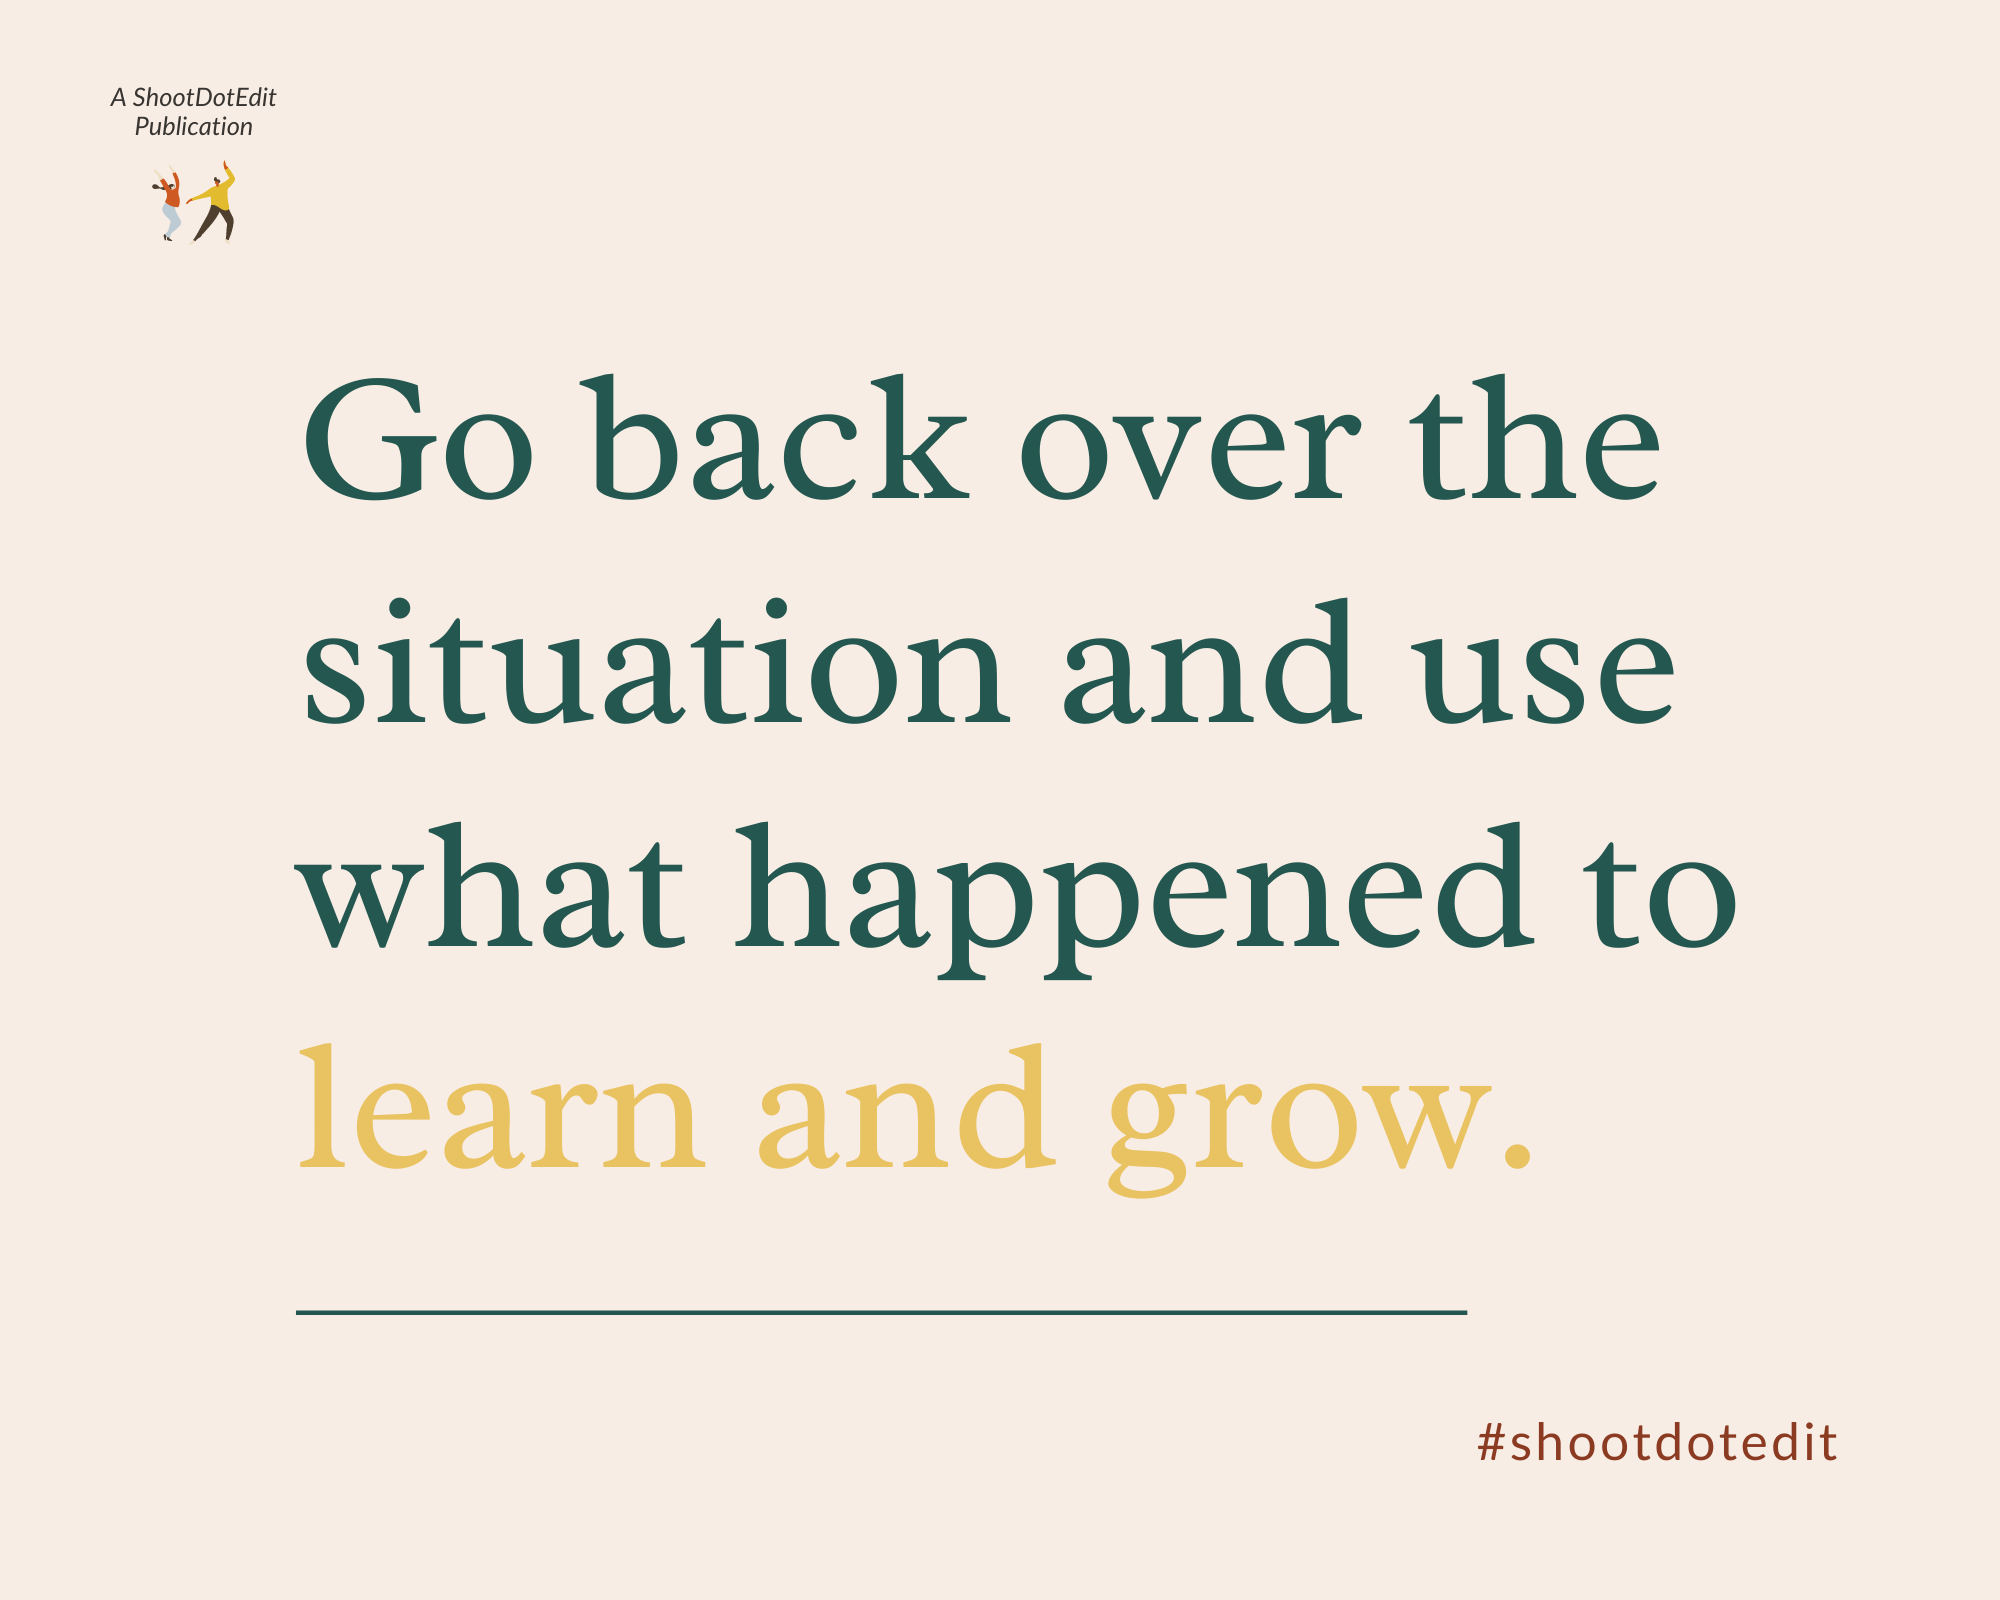 Infographic stating go back over the situation and use what happened to learn and grow